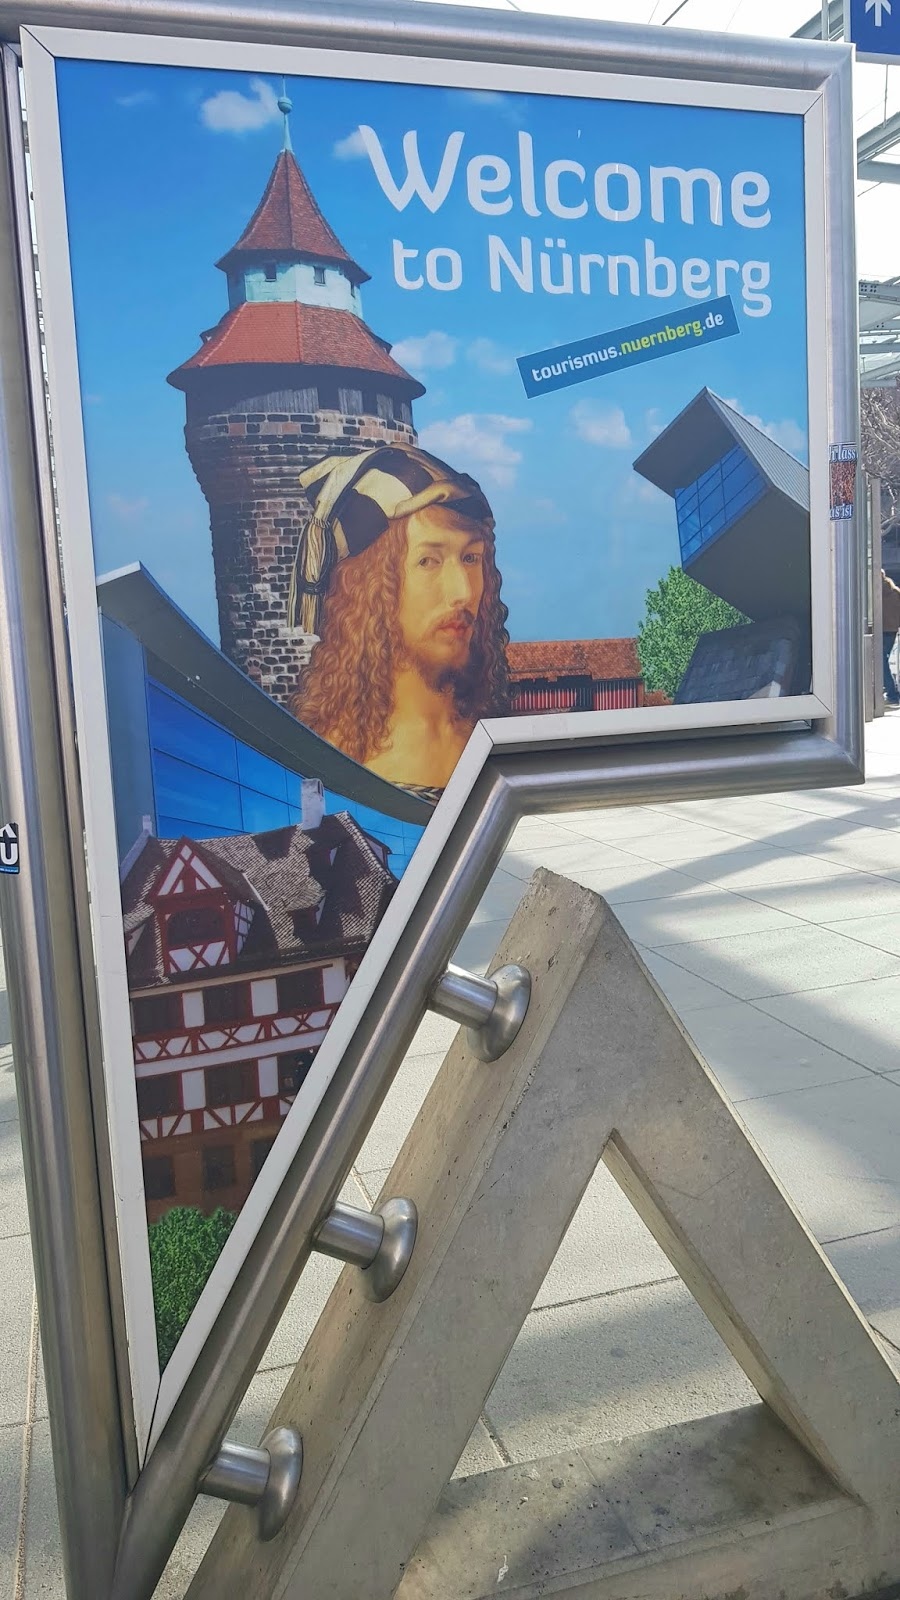 The welcome to Nürnberg sign at the airport in Germany, featuring local hero, artist Albrecht Dürer